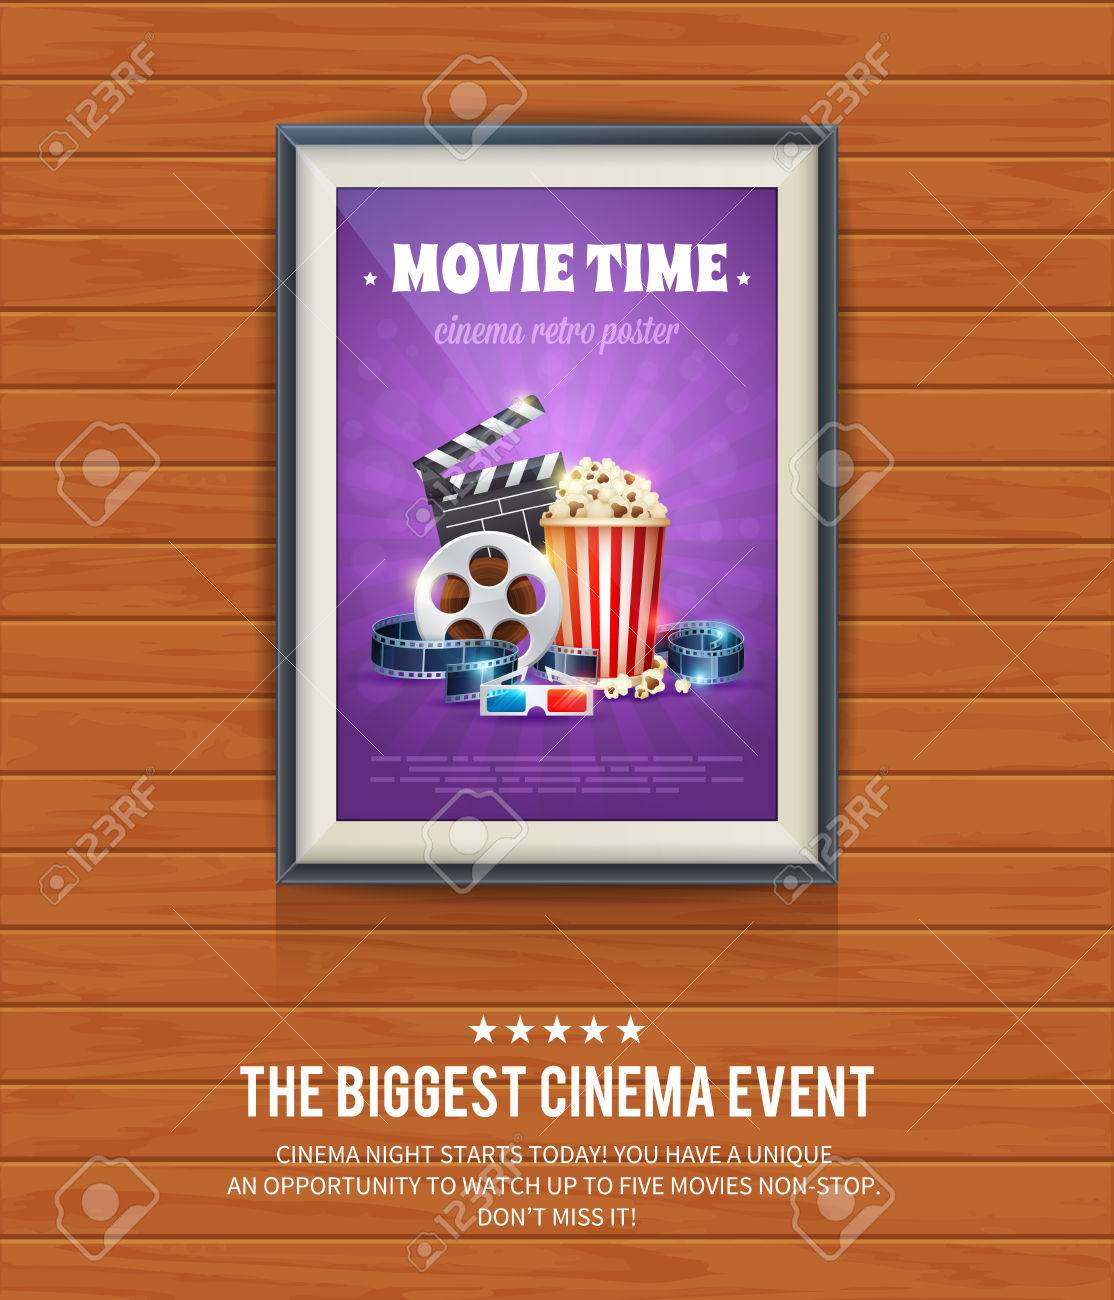 Realistic Cinema Poster In A Wooden Picture Frame Hanging On Textured Wall Movies